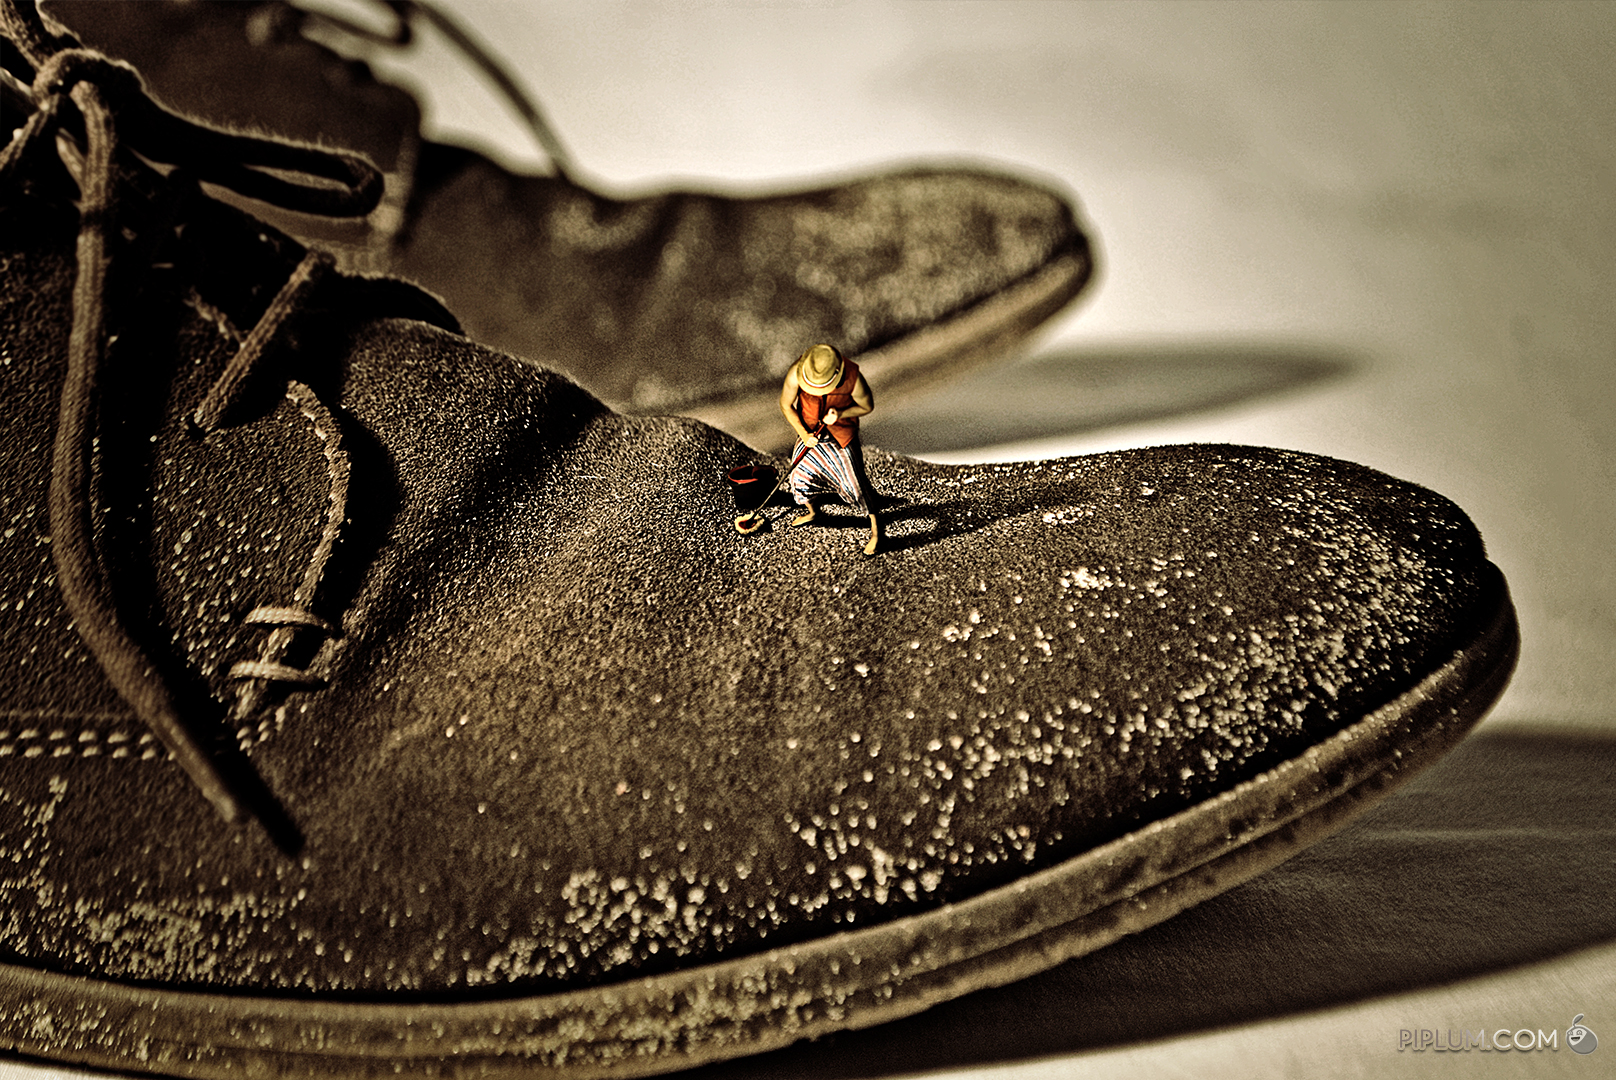 If-you-don't-build-your-dream-someone-will-hire-you-to-help-build-theirs. Mn cleaning his boss shoes. Surreal photography.